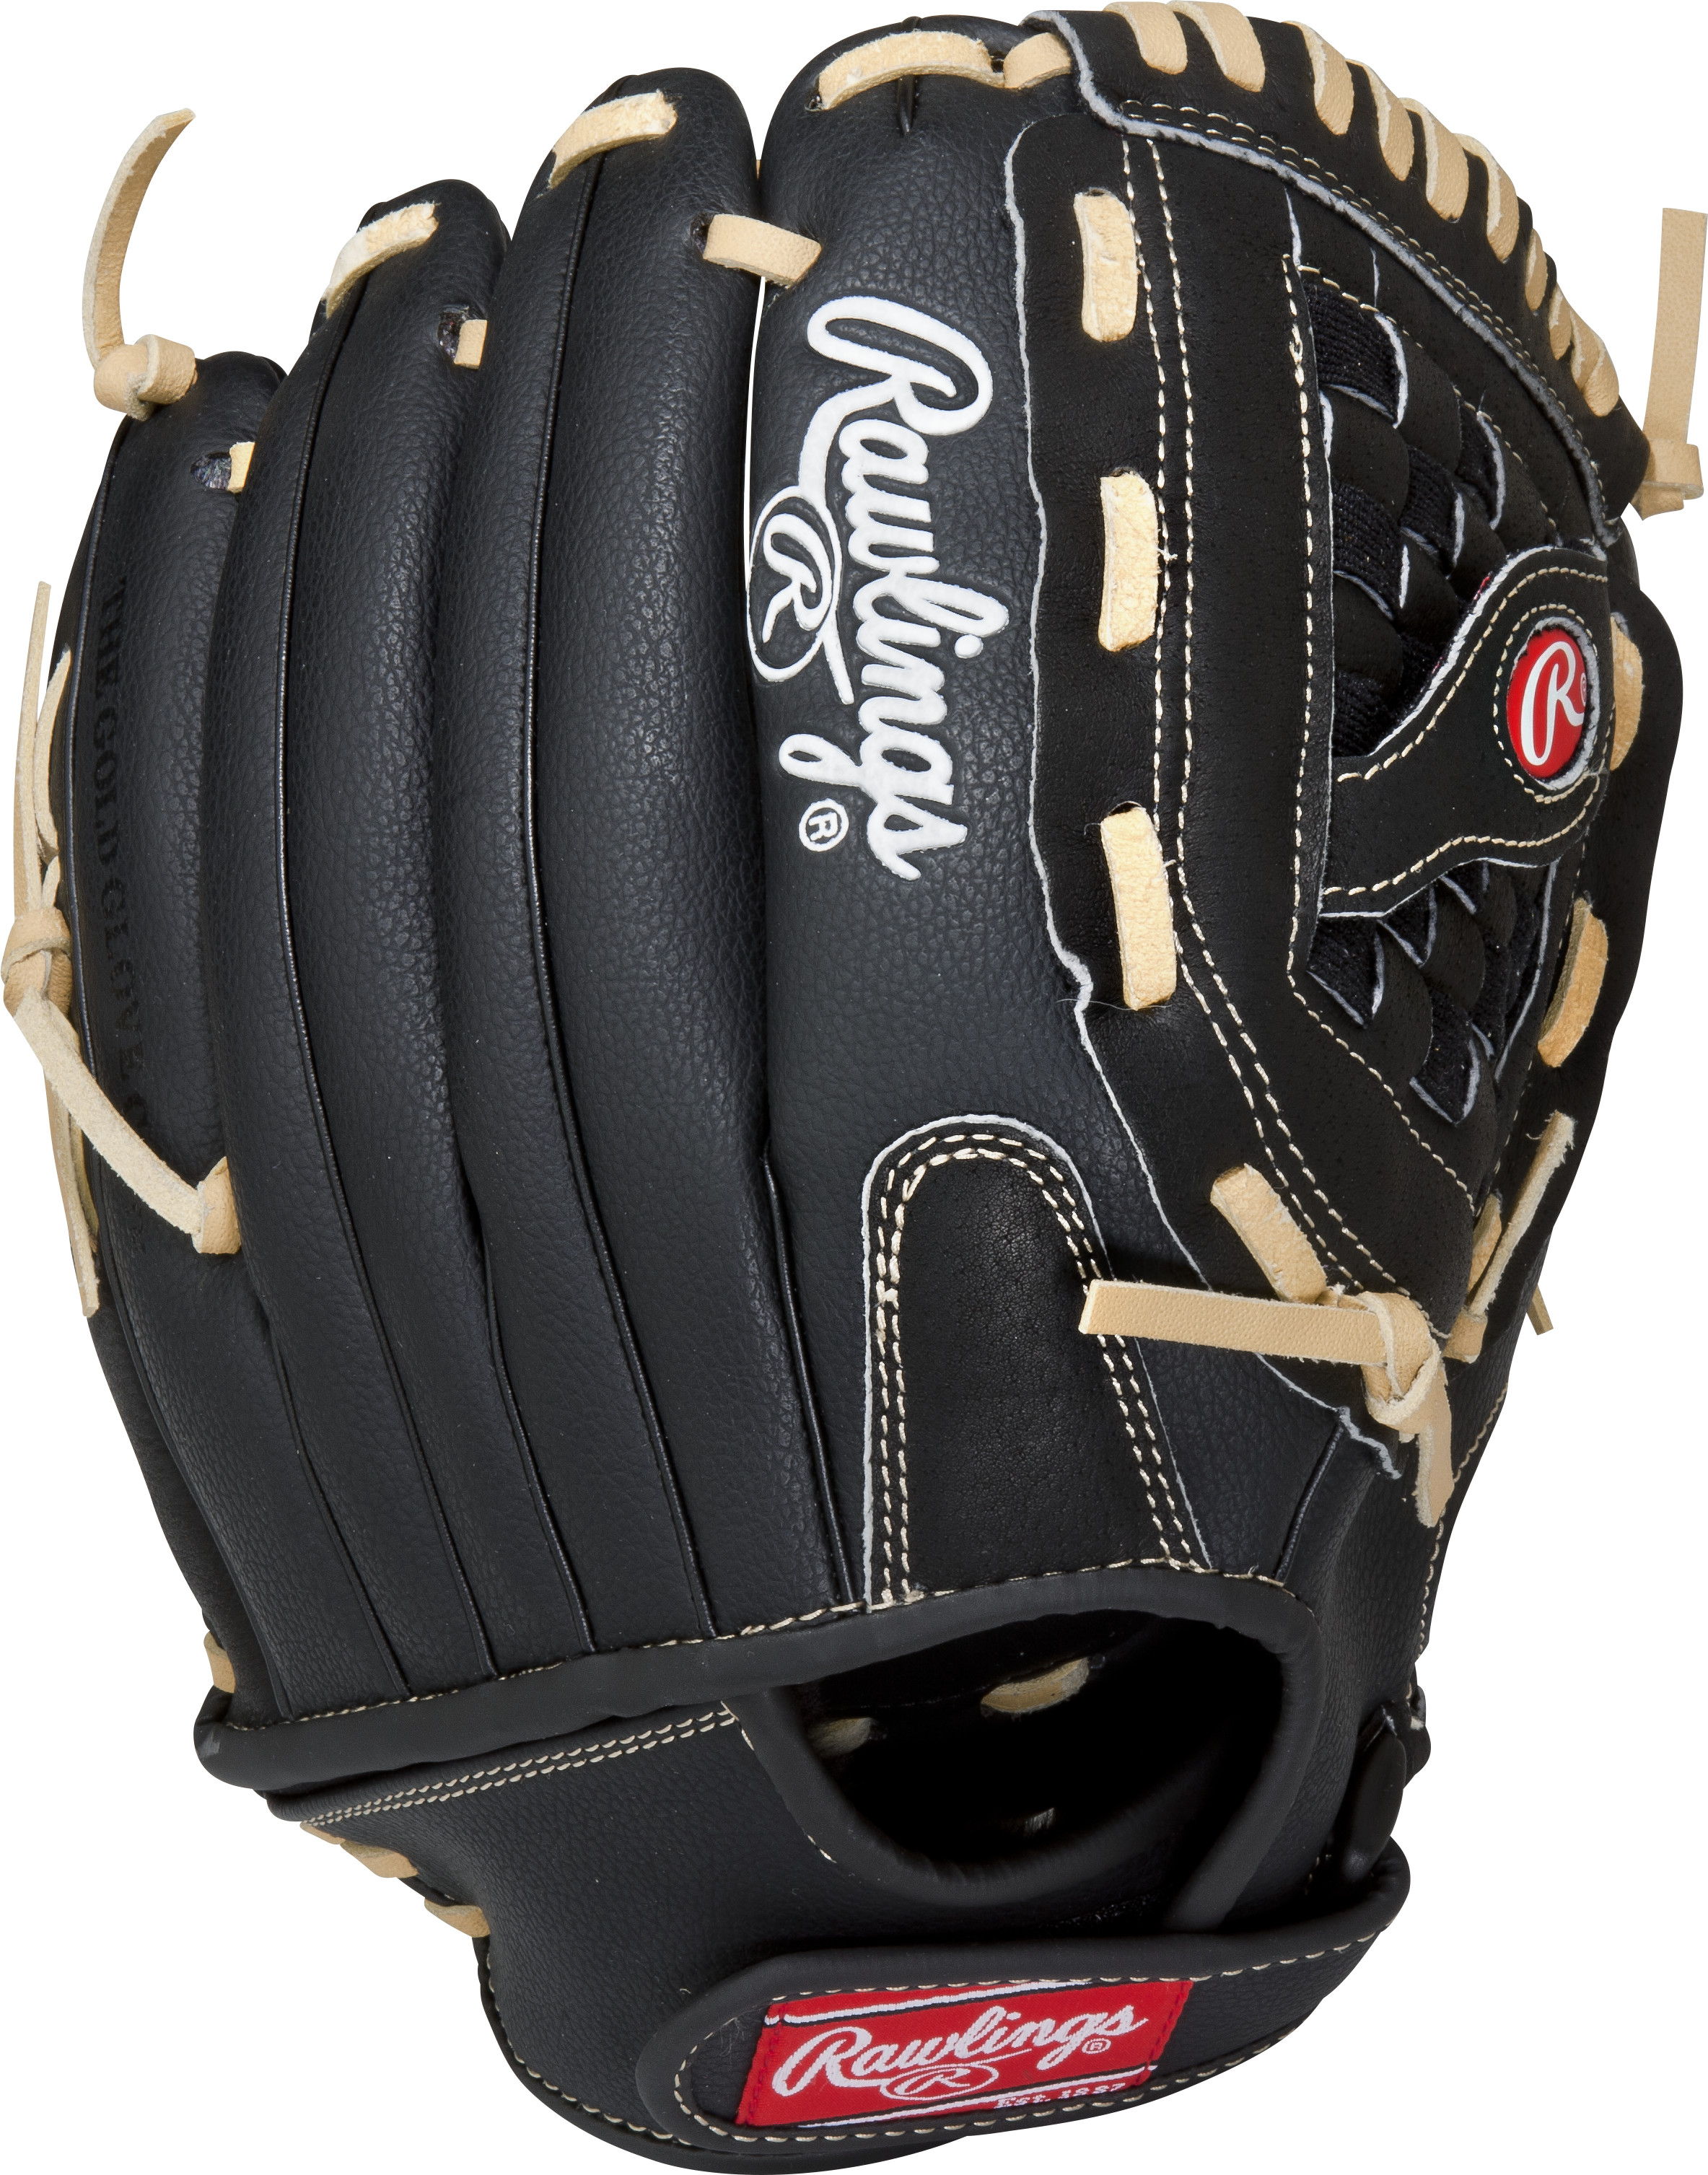 http://www.bestbatdeals.com/images/gloves/rawlings/RSS125C_back.jpg